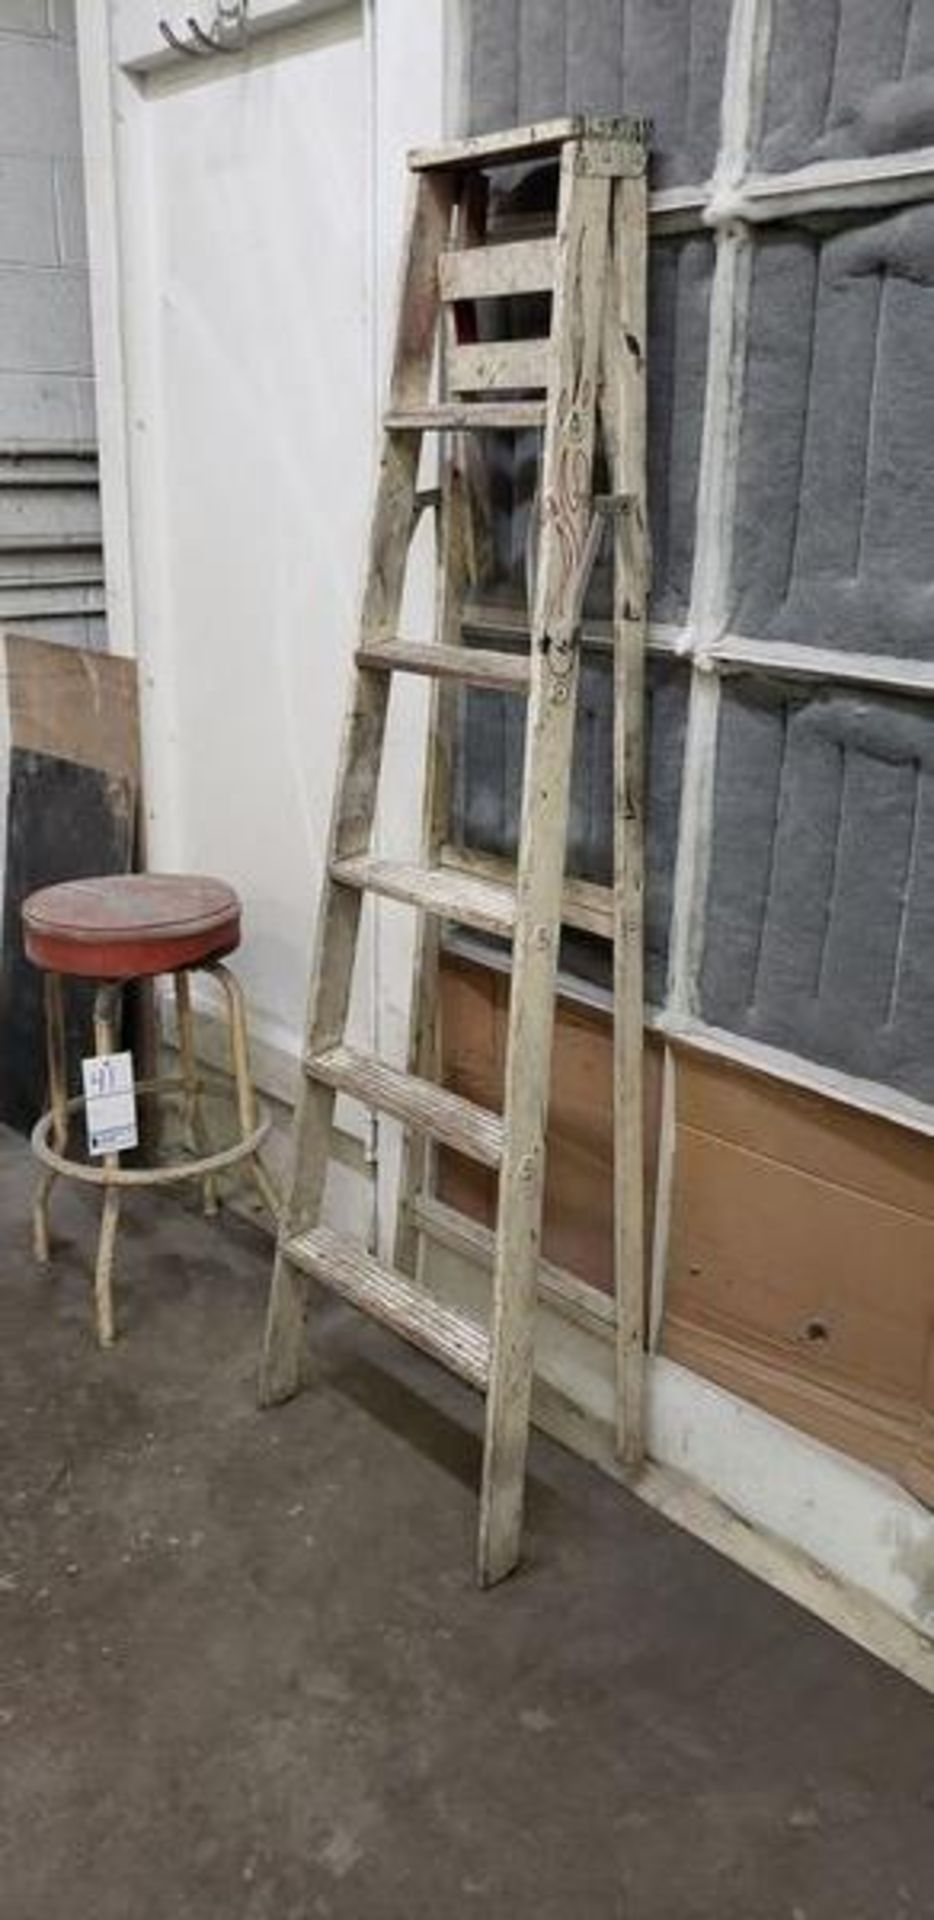 W6' WOODEN LADDER - Image 2 of 2